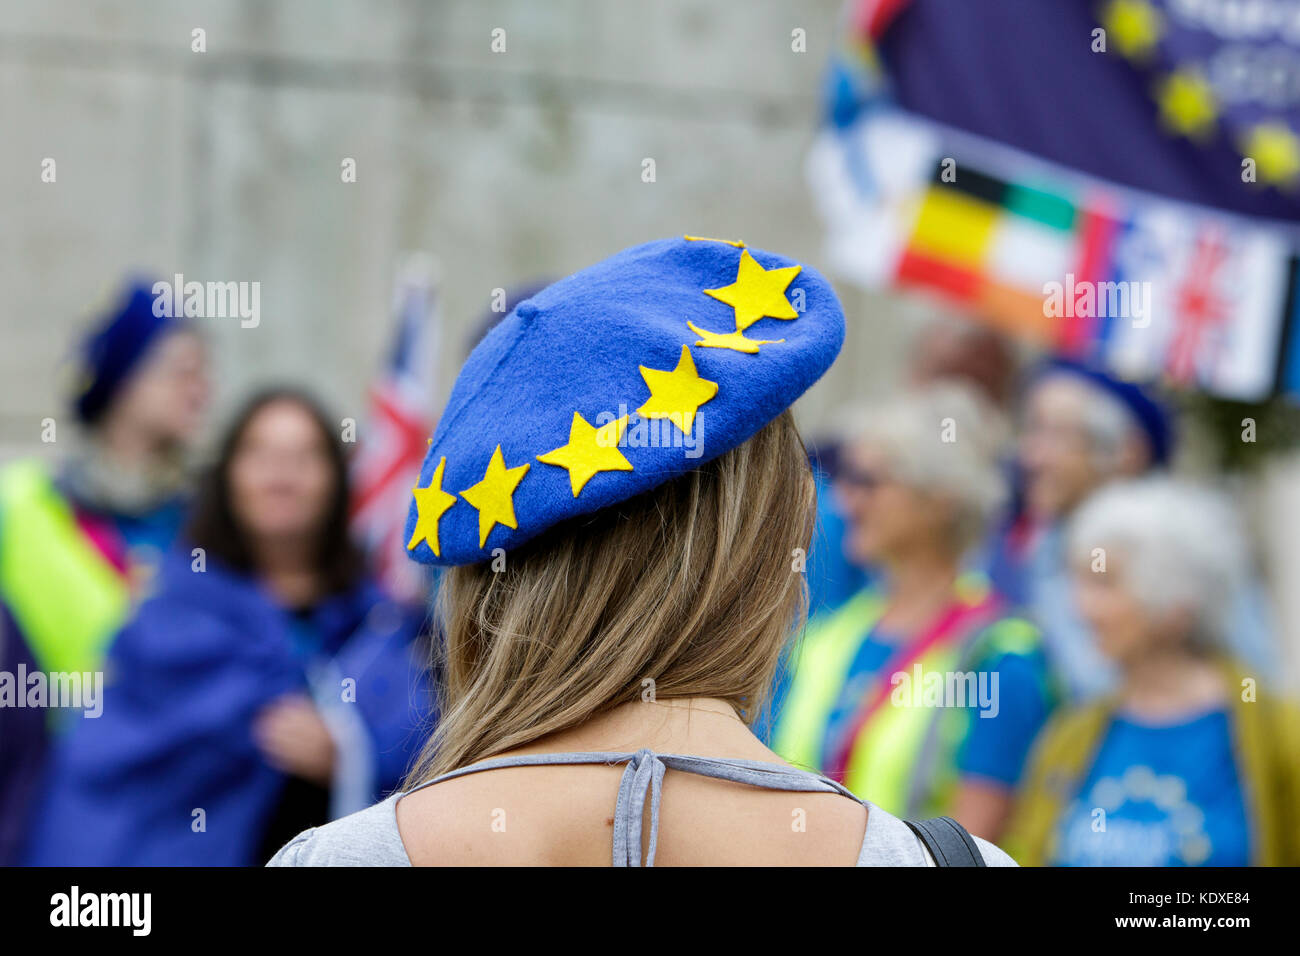 A Pro EU supporter wearing a Bath EU beret is pictured as she joins other Pro EU supporters at an anti Brexit protest Stock Photo